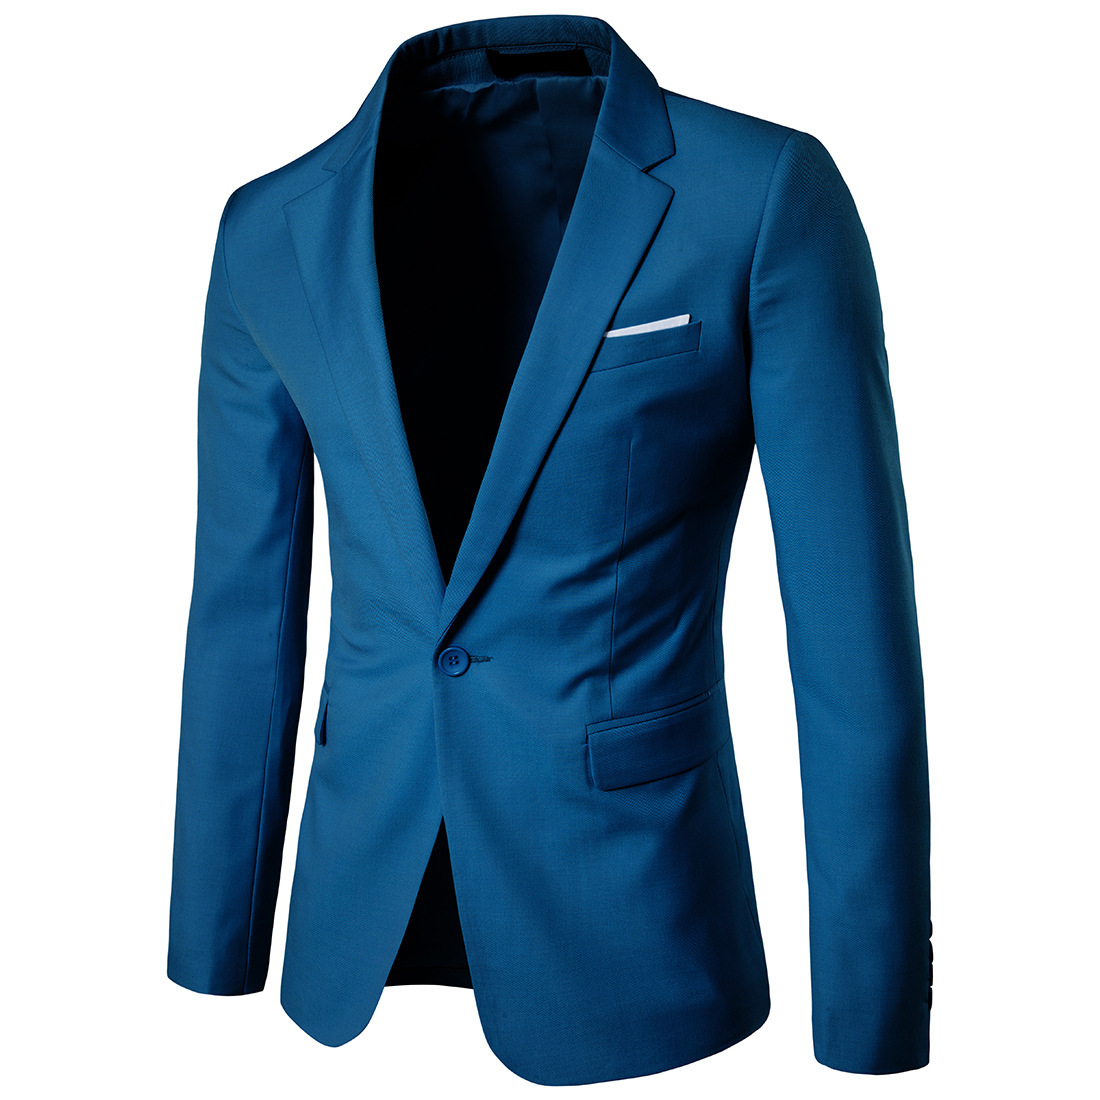 2018 Business Leisure Suit Lang Best Man Wedding One-Button Suit Jacket Men'S Wear 9-Color S-6xl Xf001